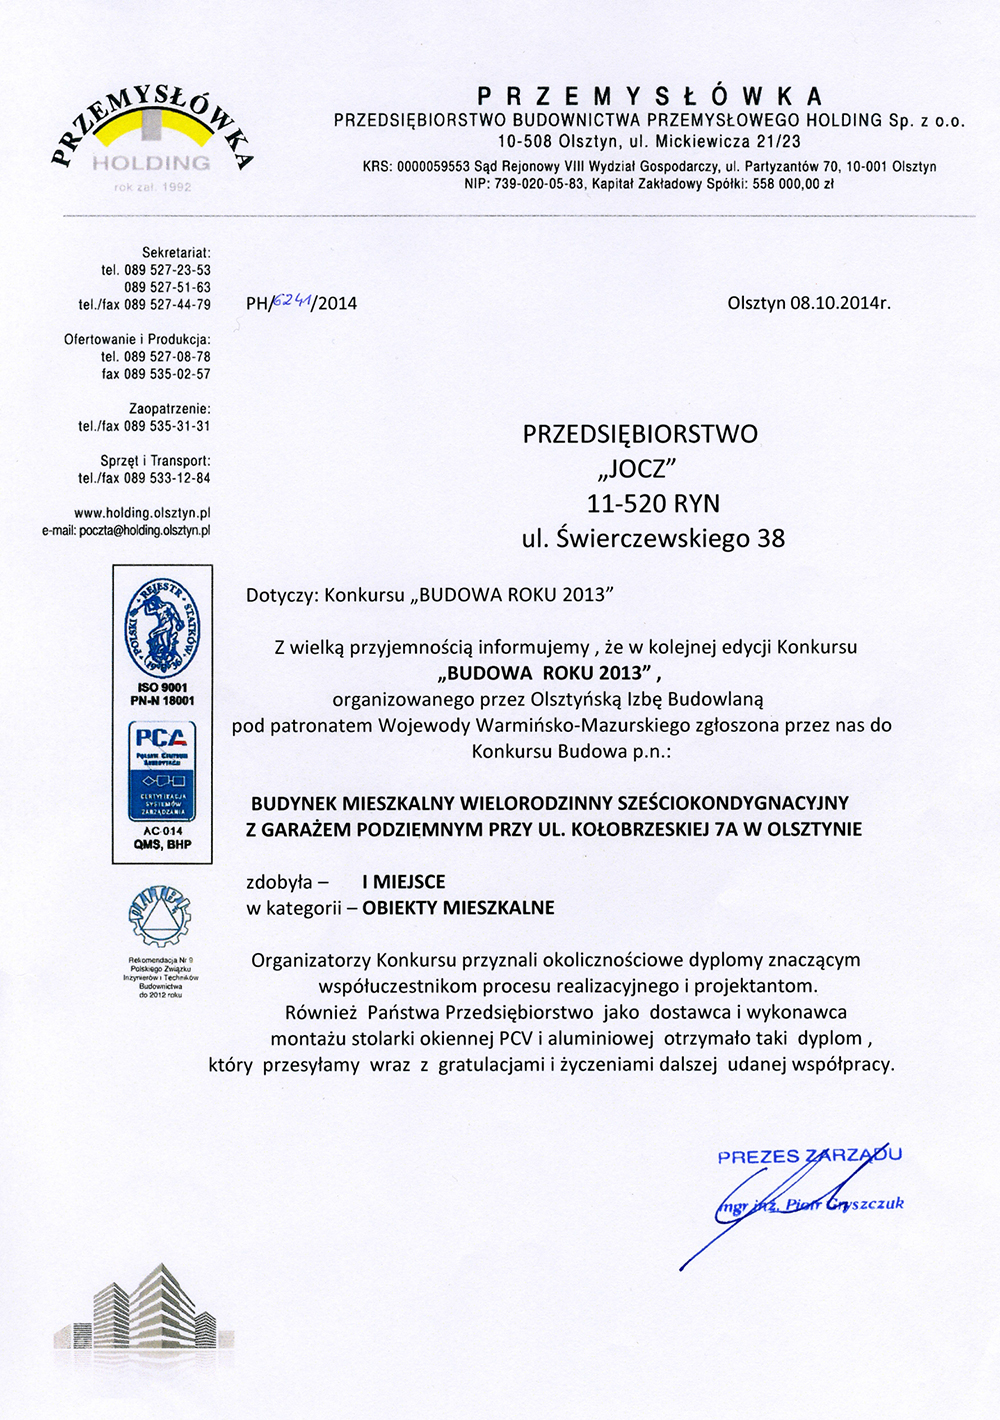 C:Documents and SettingsArkadiusz.JOCZUstawienia lokalneTempMapa